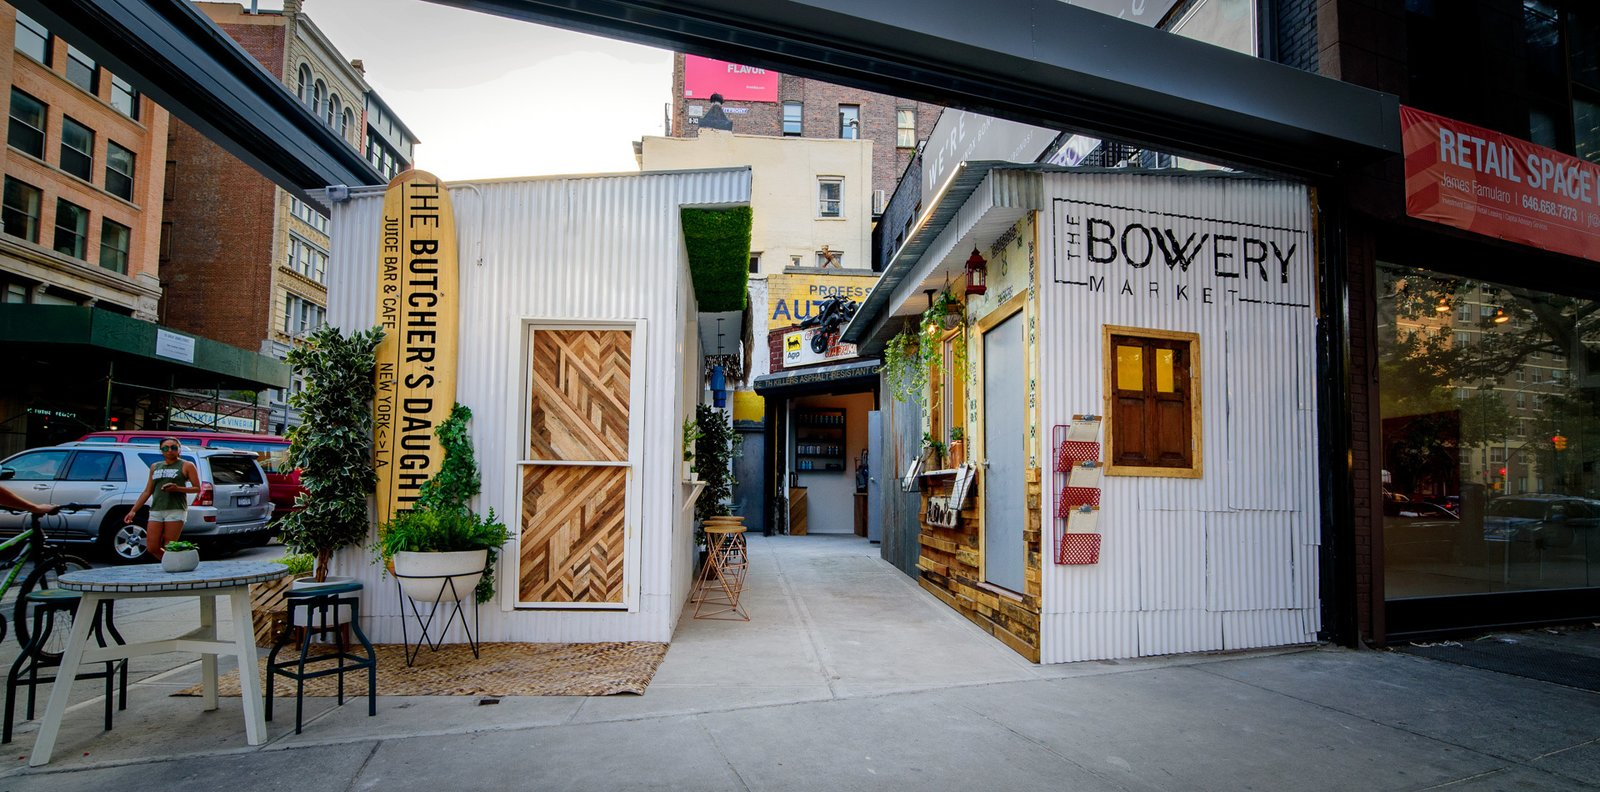 Five  food stalls now occupy the site of a former auto body shop on the Bowery in Manhattan's NoHo neighborhood.  Photo by Ken Moore  CAFE Idea from New York's Newest Food Hall Fits in Just 1,000 Square Feet